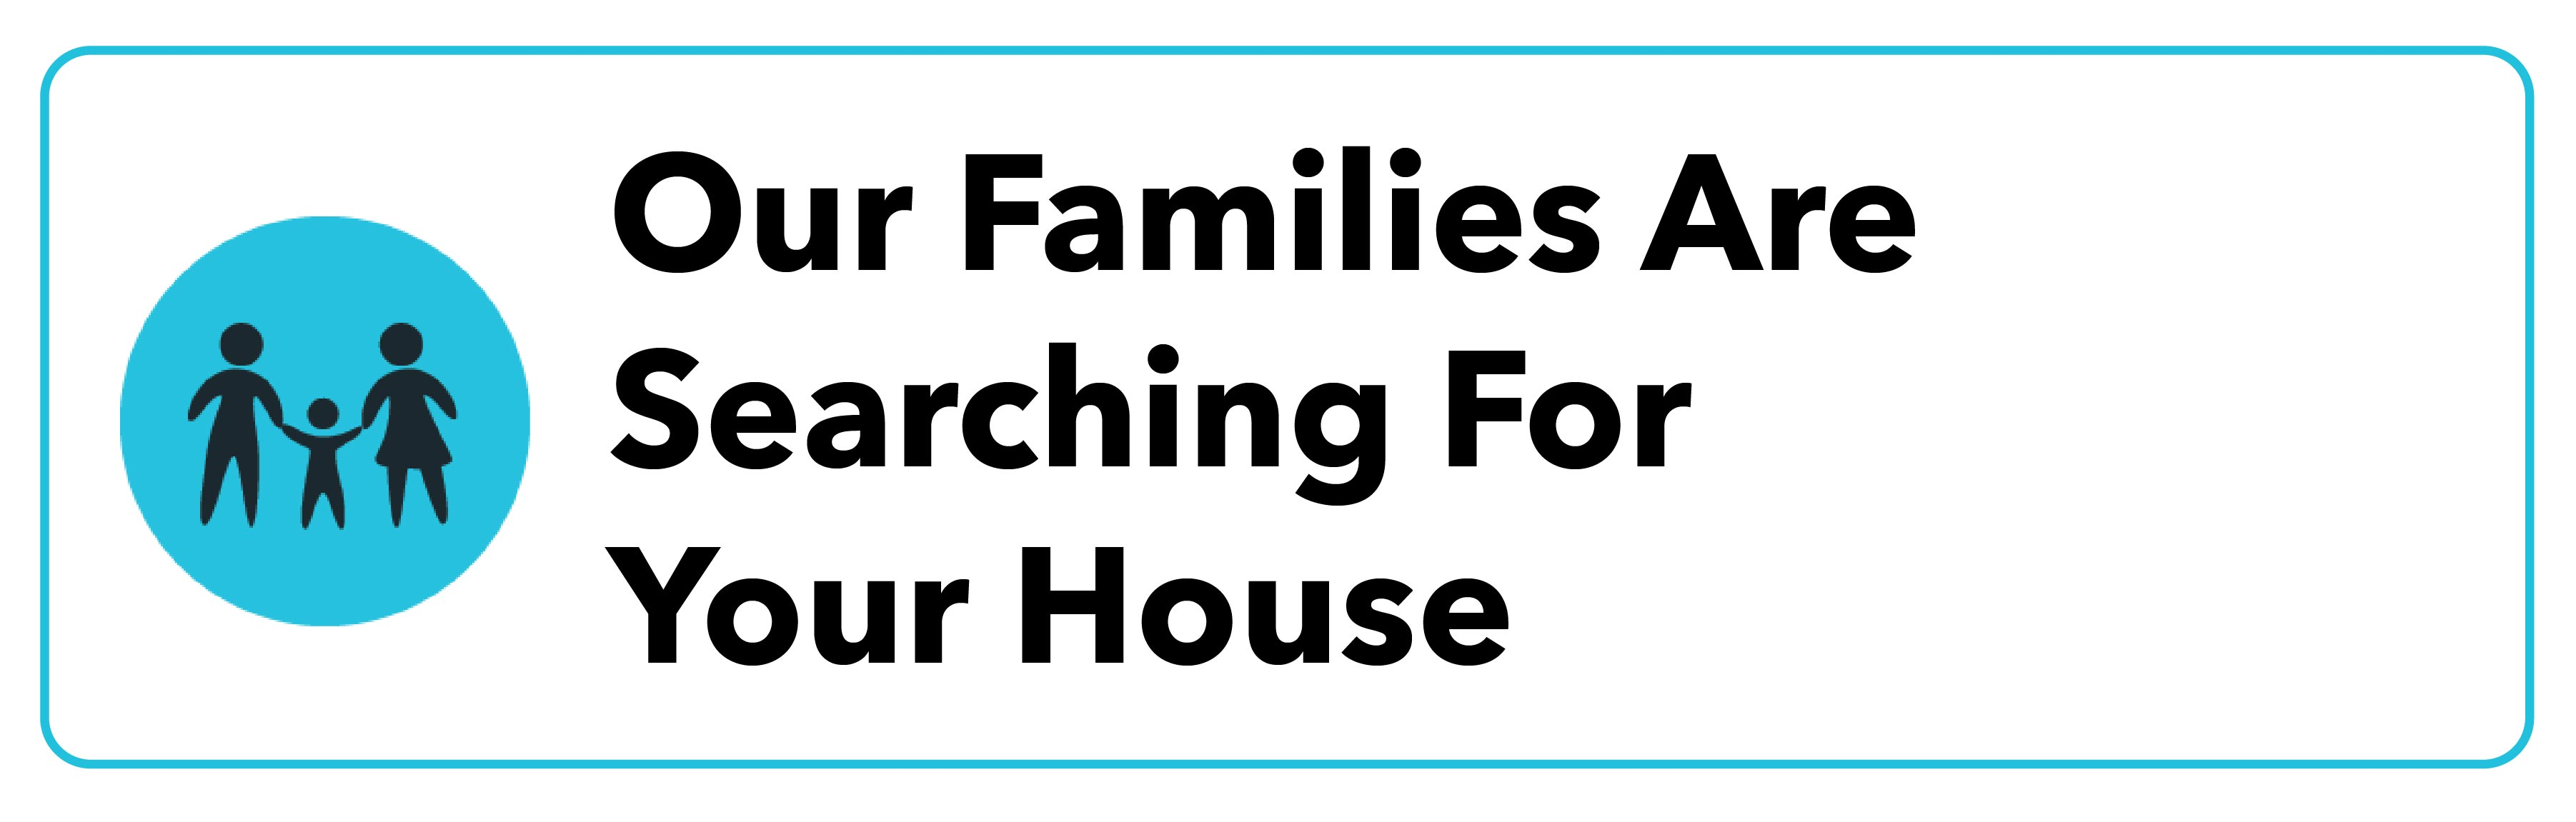 Our Families Are Searching For Your House